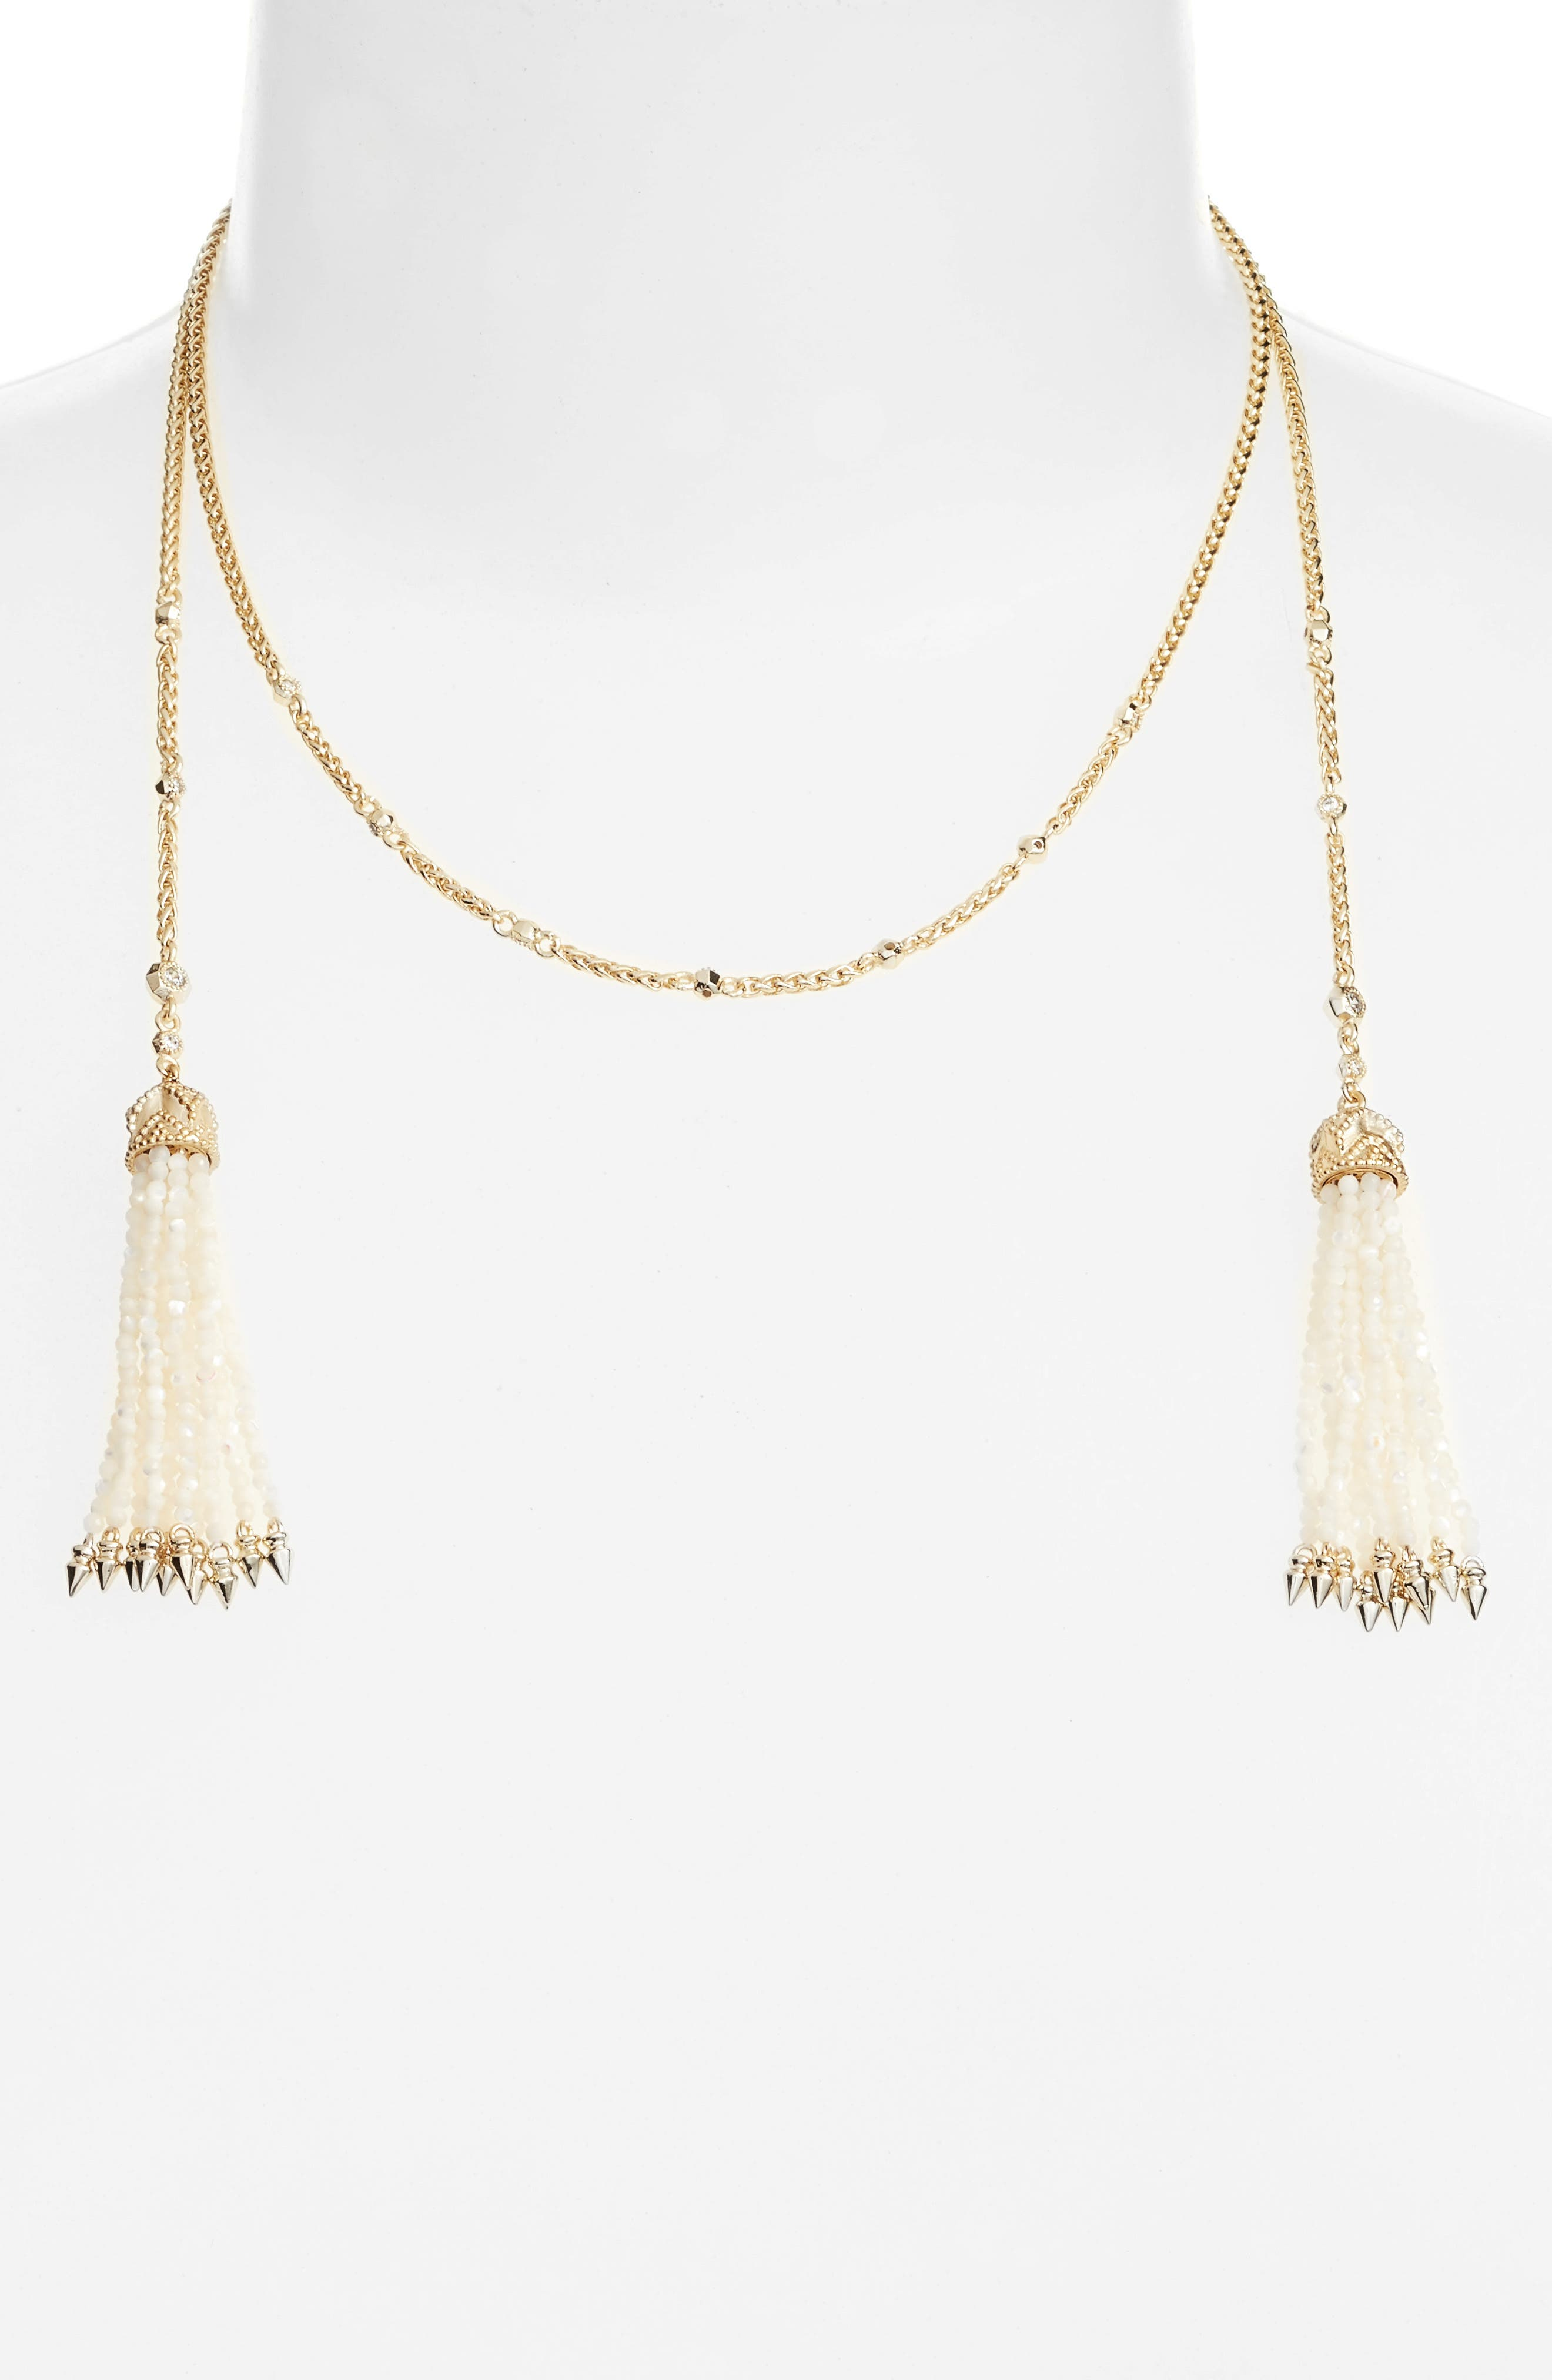 Monique Tassel Necklace,                             Main thumbnail 1, color,                             Ivory Mop/ Gold